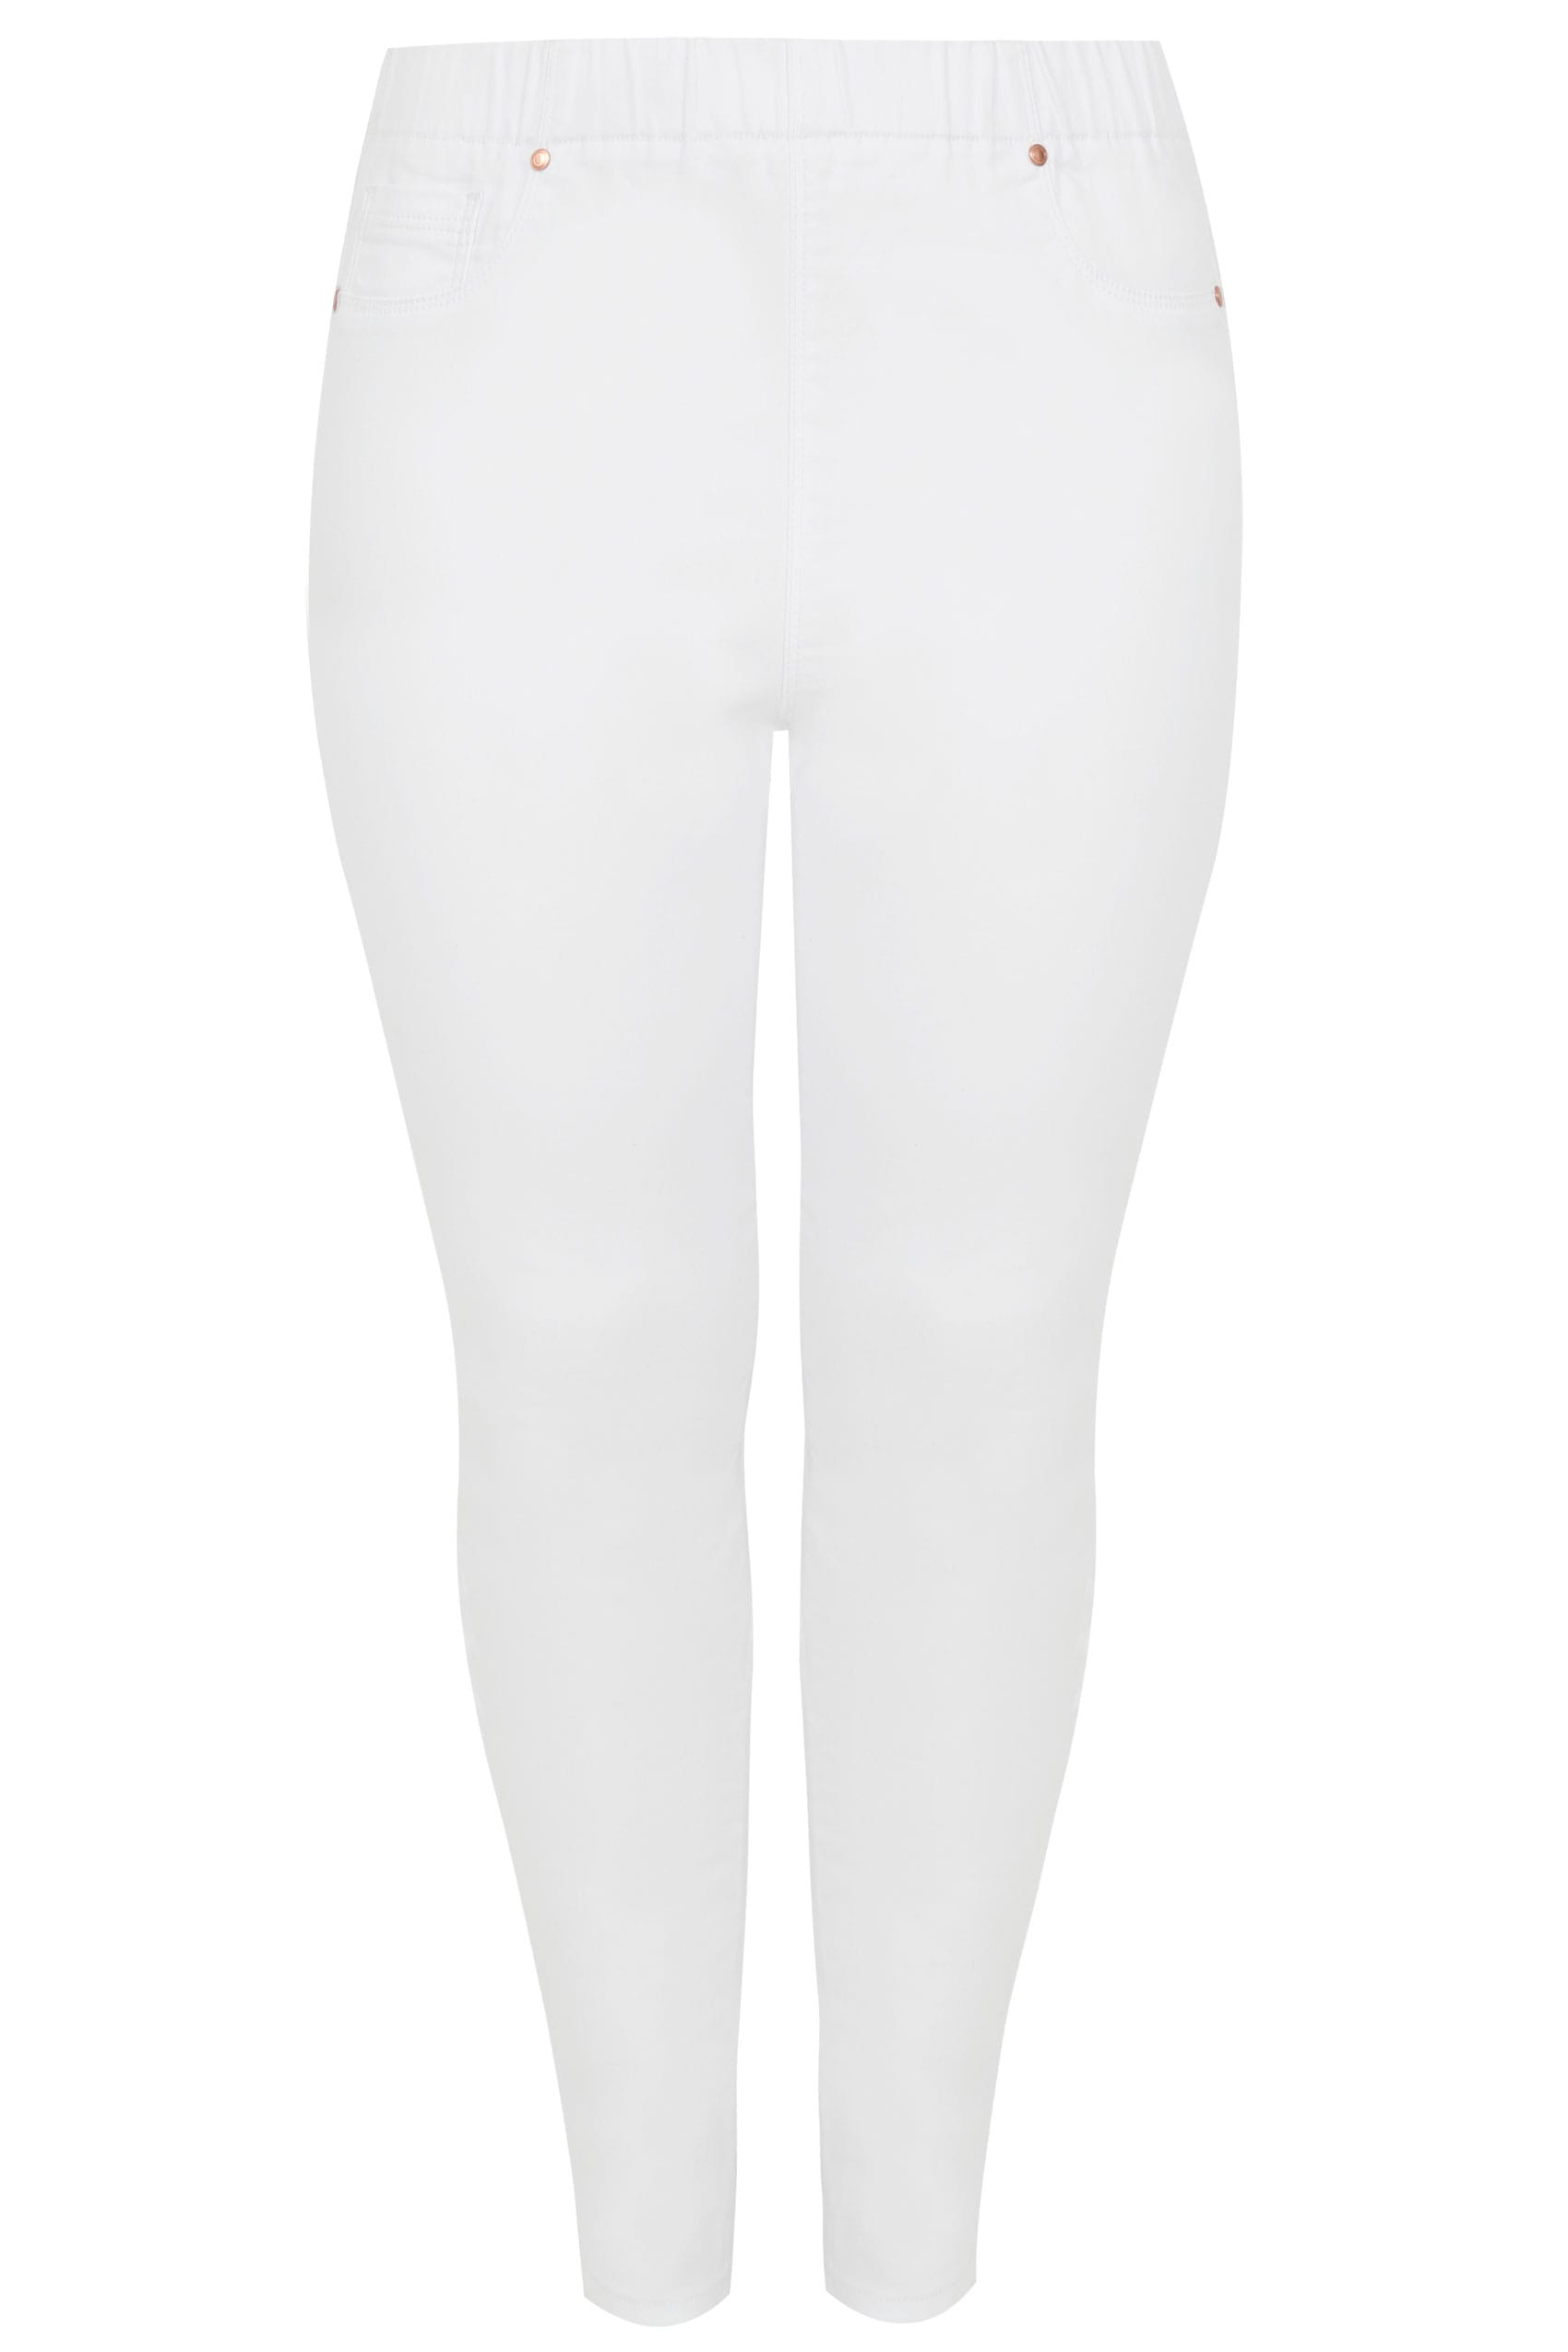 imaginary-7mbh1j.cf: white jeggings. Full length skinny fit mid-rise jeggings features a light sheen and jean La Bijou Womens LABIJOU French Terry Basic Jegging Skinny Pants S. by La Bijou. $ - $ $ 8 $ 17 98 Prime. FREE Shipping on eligible orders. Some sizes/colors are Prime eligible.